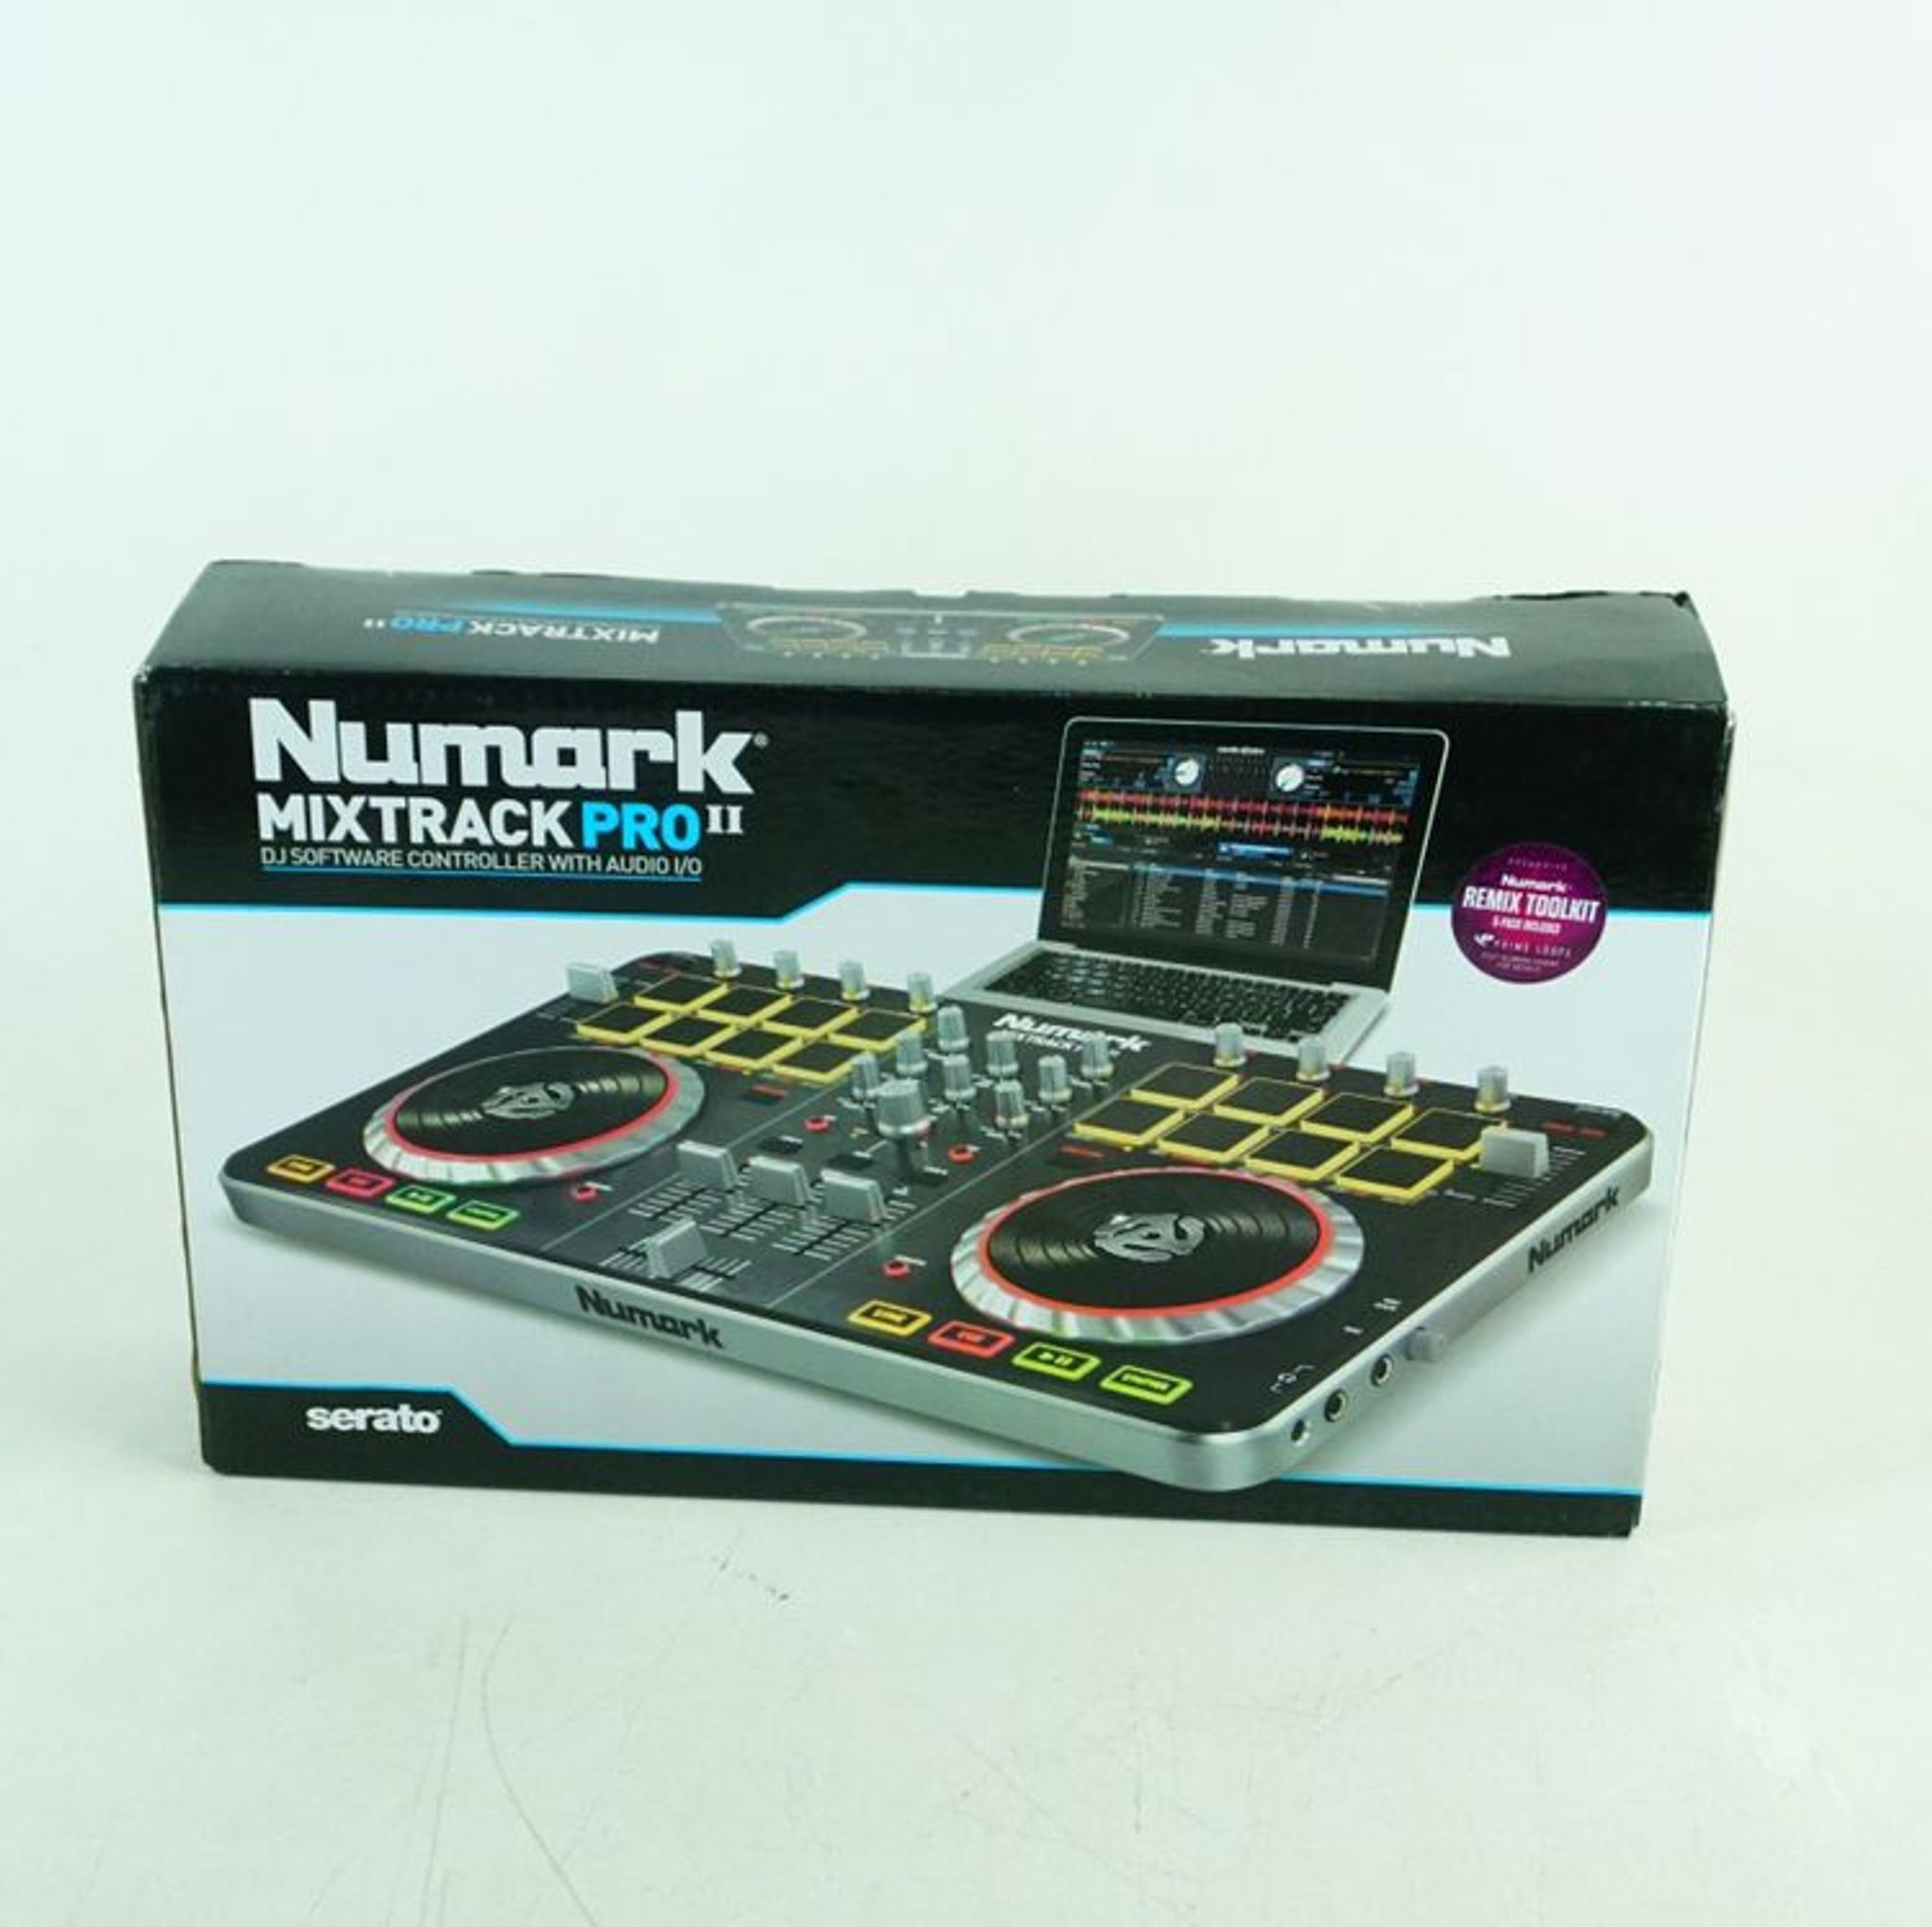 Numark Mixtrack Pro Ii Dj Software Controller With Audio I O With Images Audio Software Pro